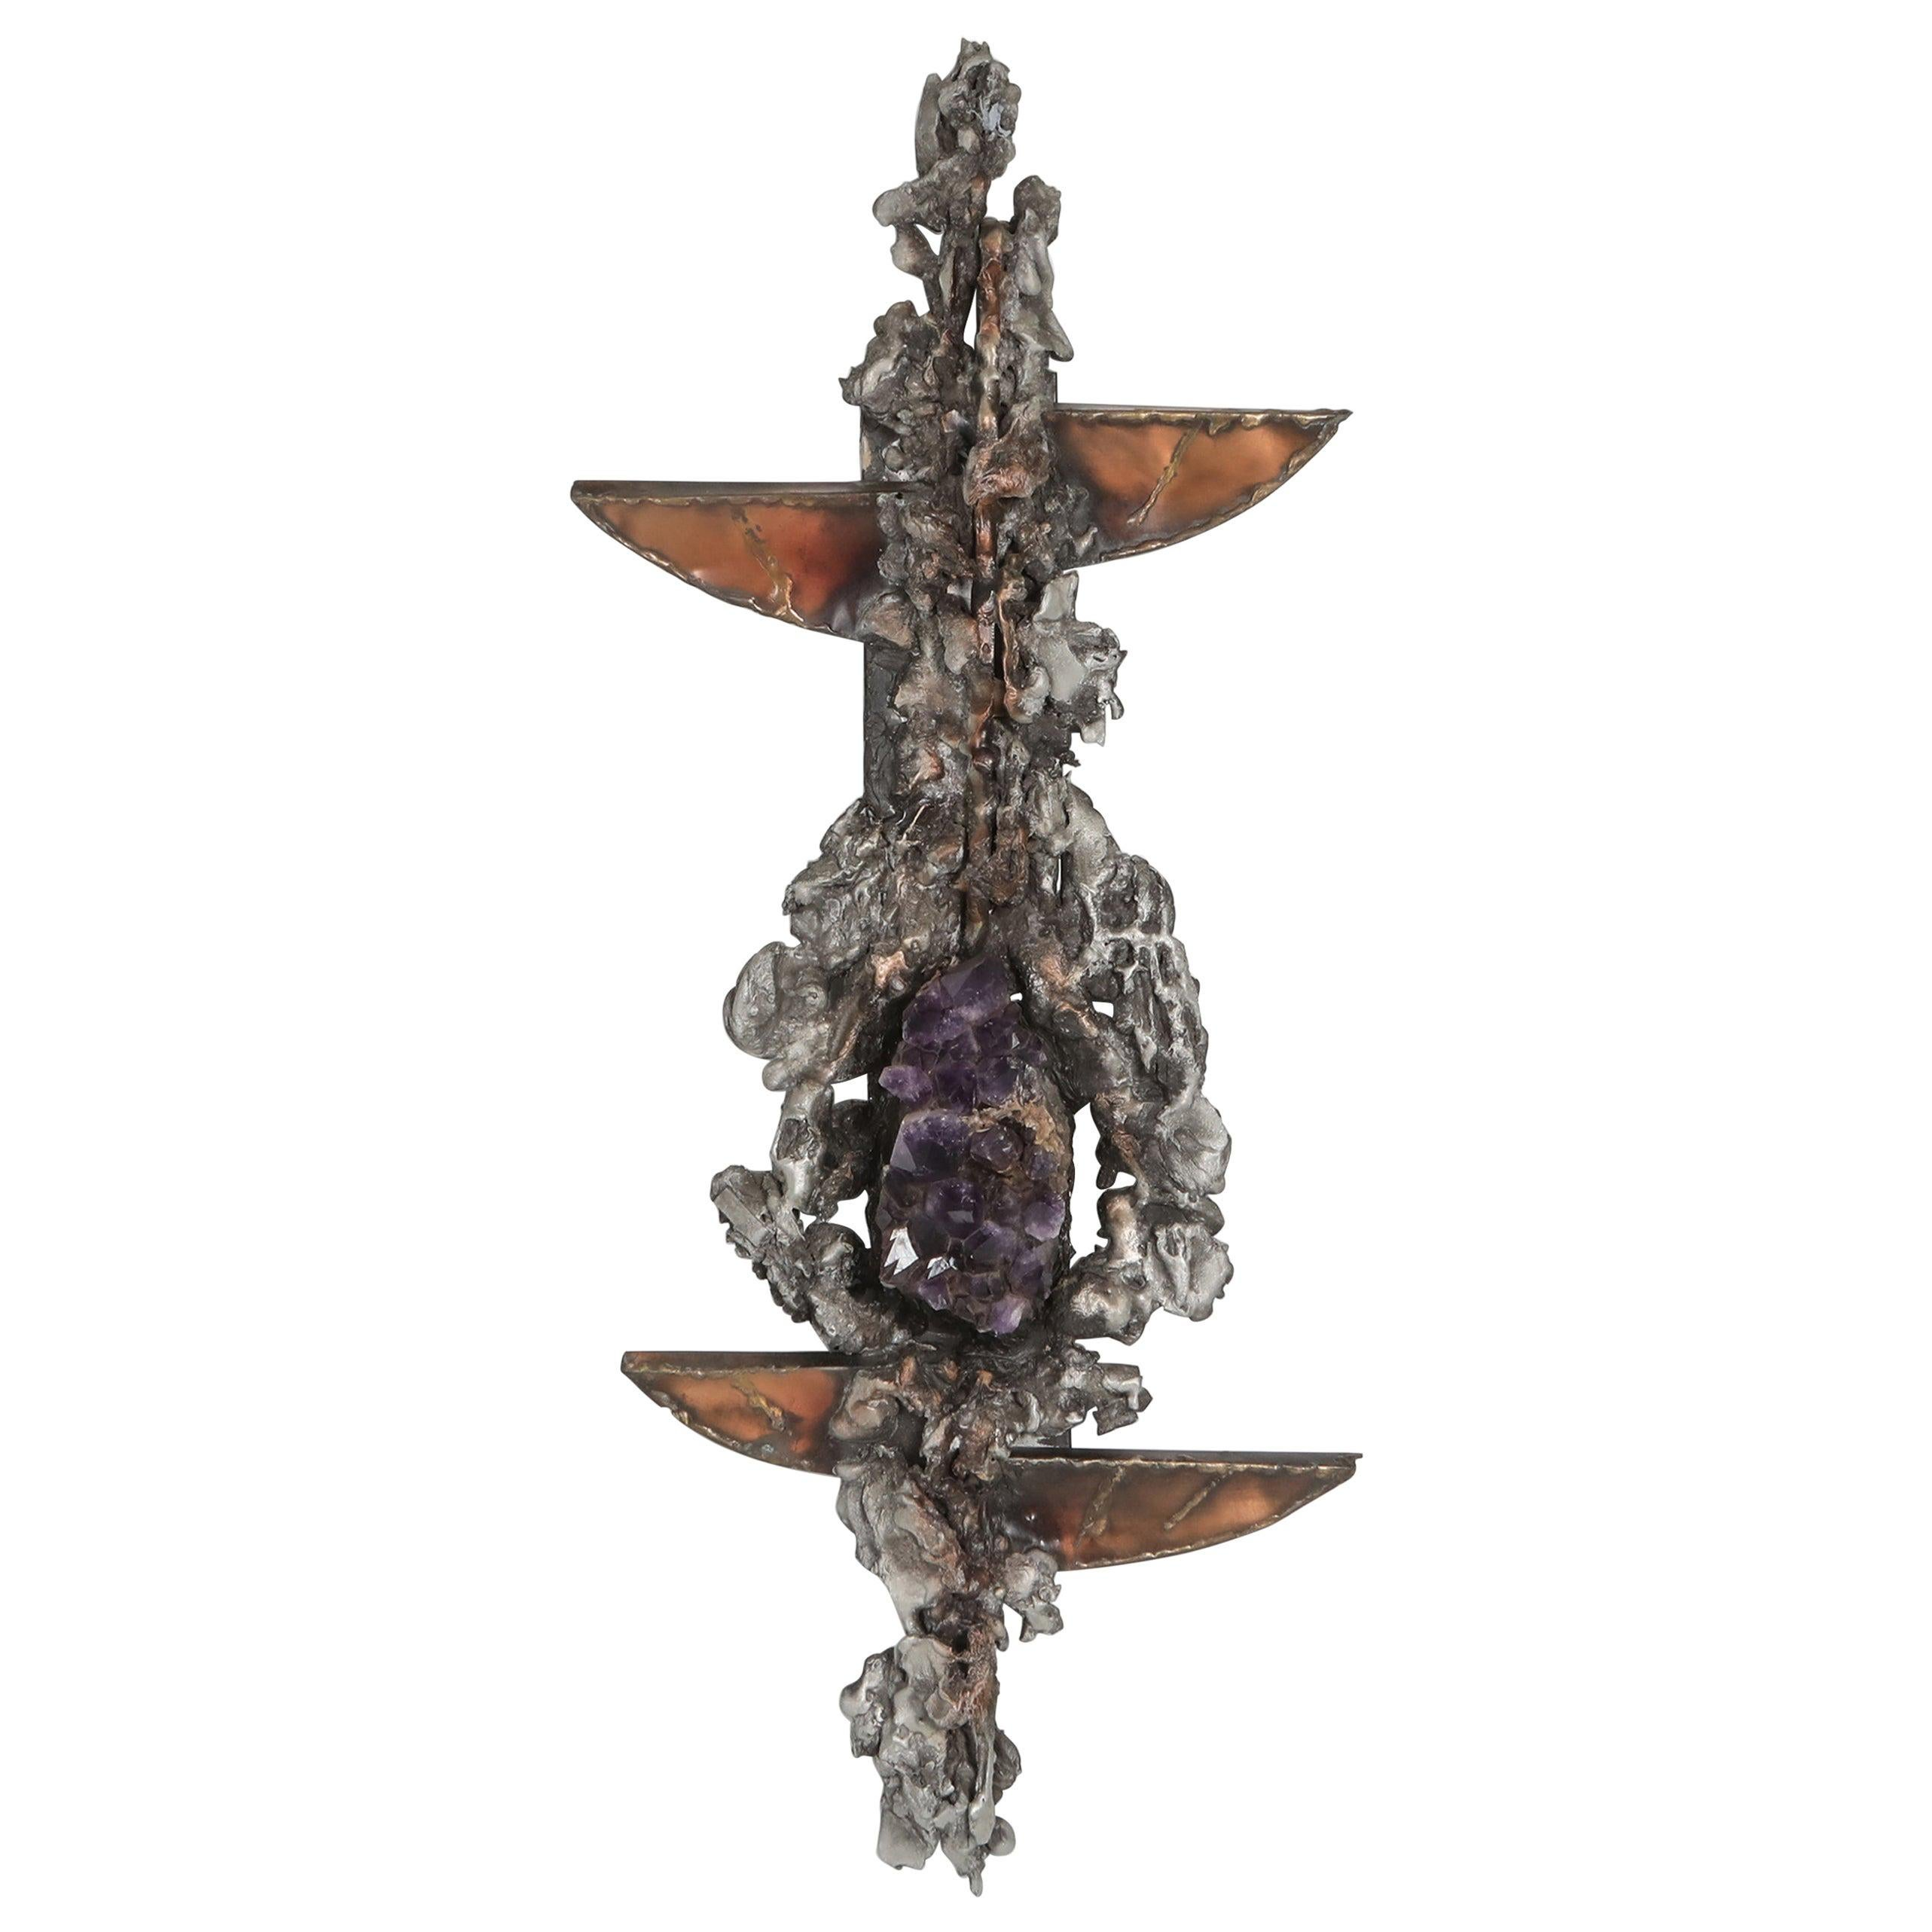 Brutalist Wall Sculpture with Amethyst Inlay by Marc D'haenens, 1970s